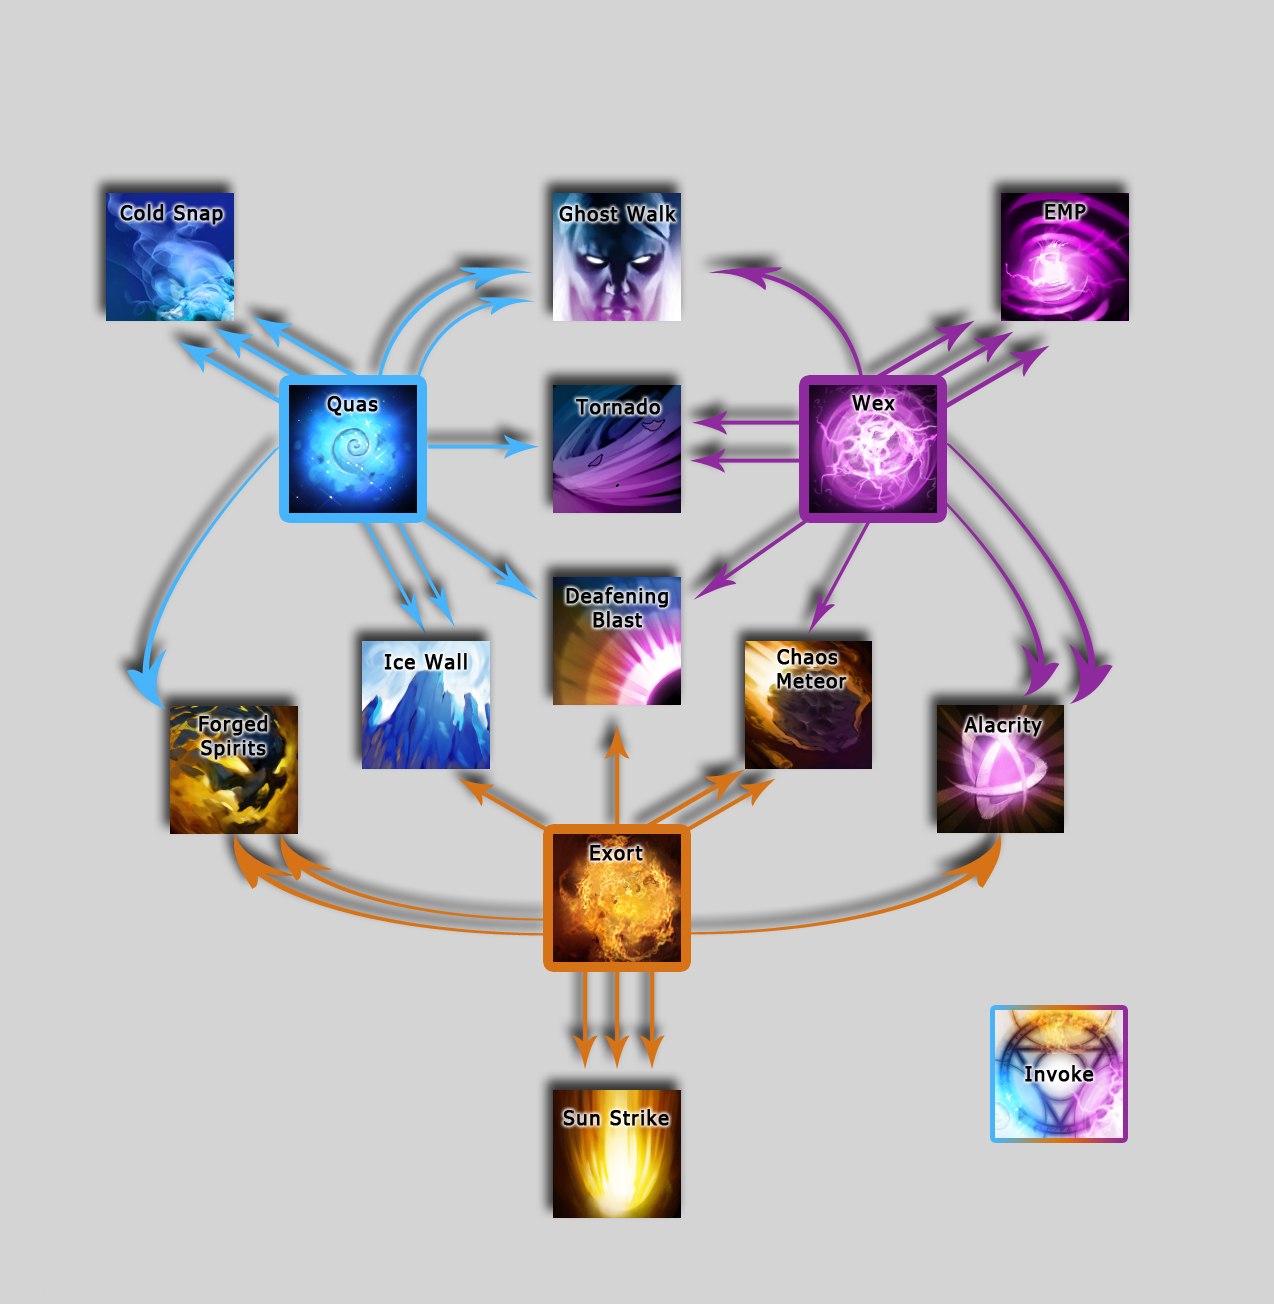 vandole games game what patch guide concepts heroes heres theres 705 previous current more guides these lini actually into built torte made 704 member community depending champs youre used suggestions gives thanks volvo that primer help written 700 dota since broad with outdated read